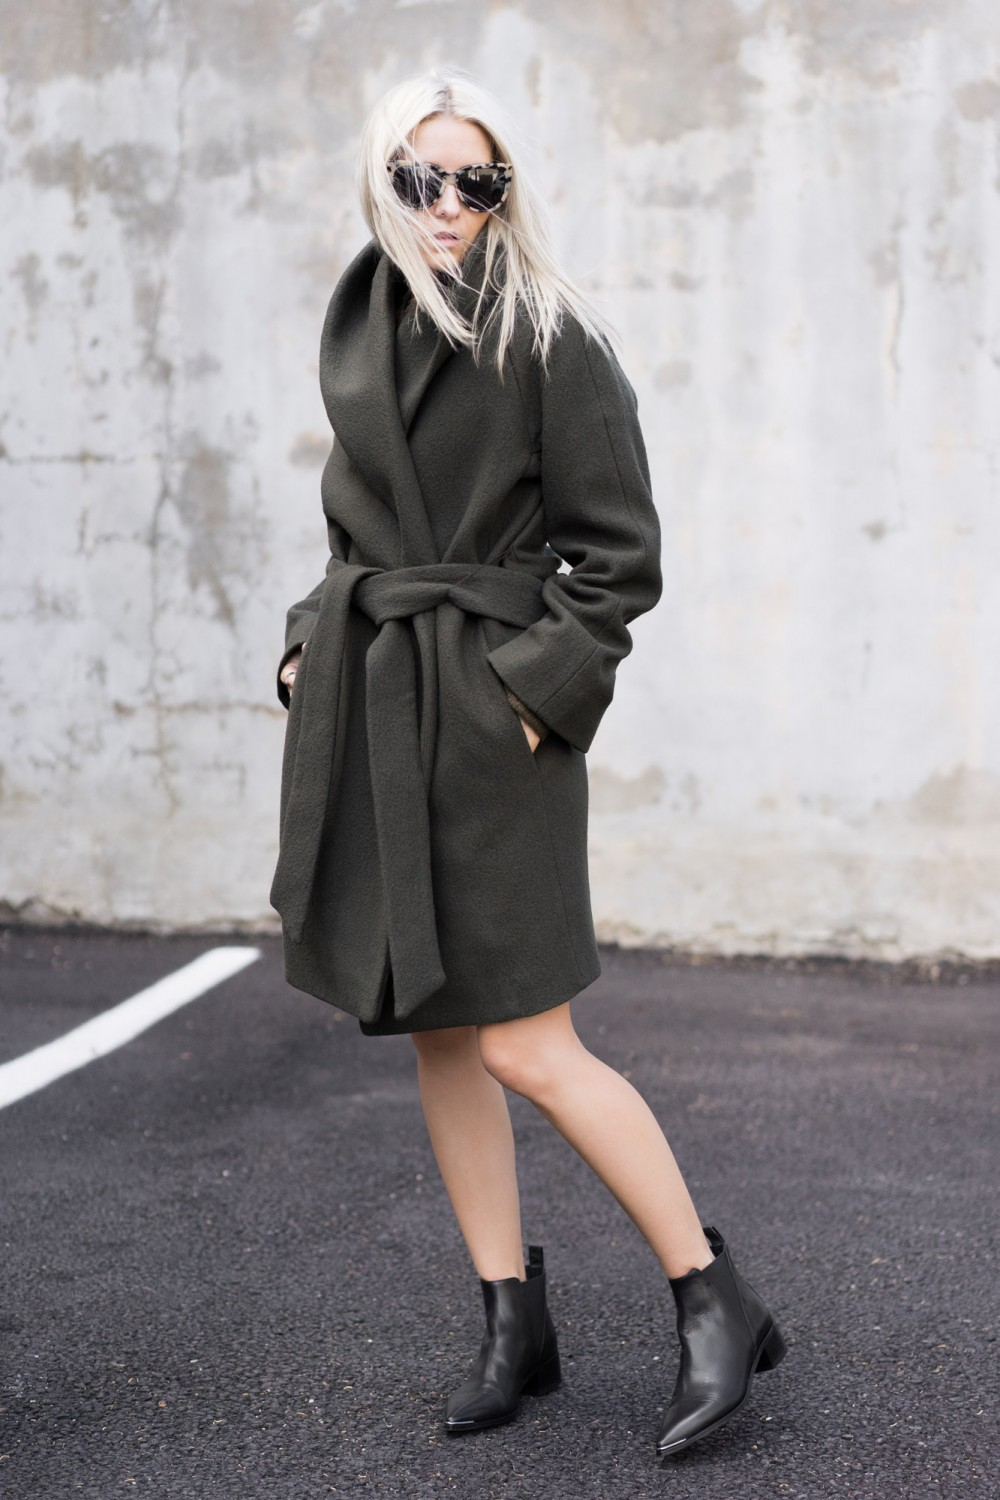 Figtny keeps it cool and sophisticated in this grey wrap coat from Artizia, worn with simplistic Chelsea boots and a pair of stylish shades. We like this for a smarter winter look, perfect for work or leisure. Coat/Knit/Scarf: Aritzia, Boots: Acne Studios.